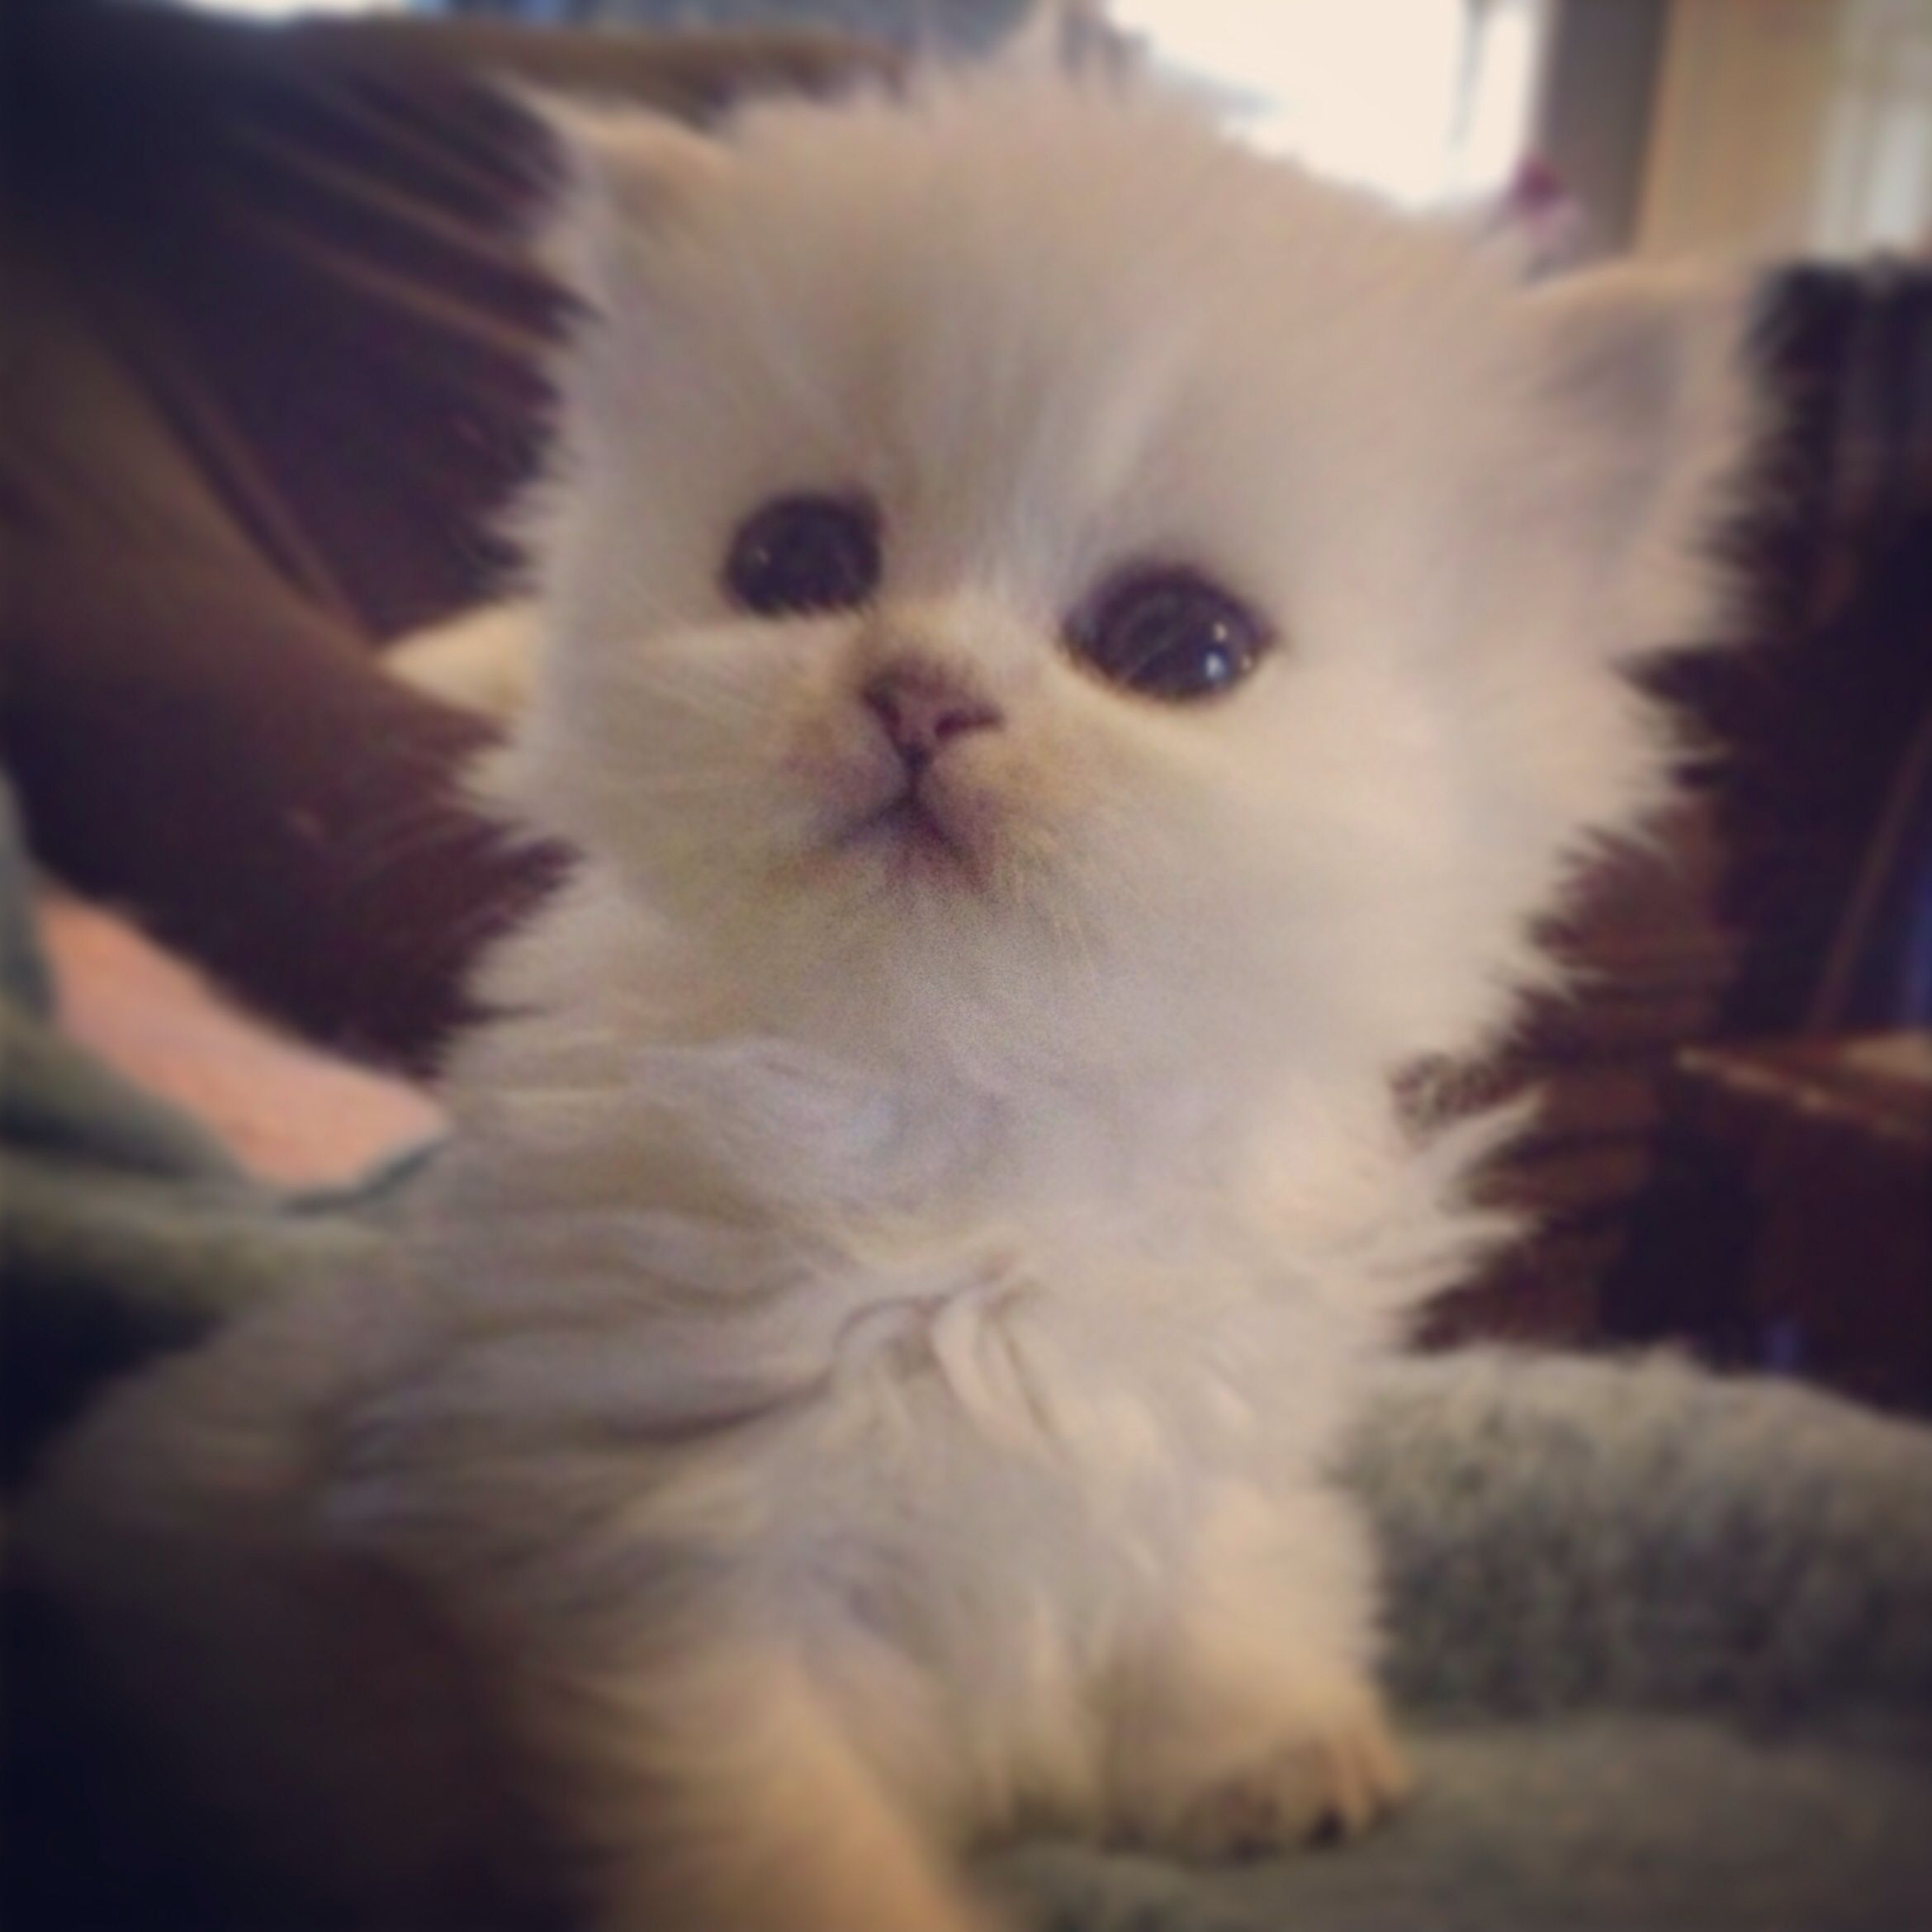 Kismet Kittens Is Proud To Announce That We Just Had A New Litter Of Teacup Doll Face Silver Shaded Kittens Persian Cat Doll Face Animals Beautiful Persian Cat